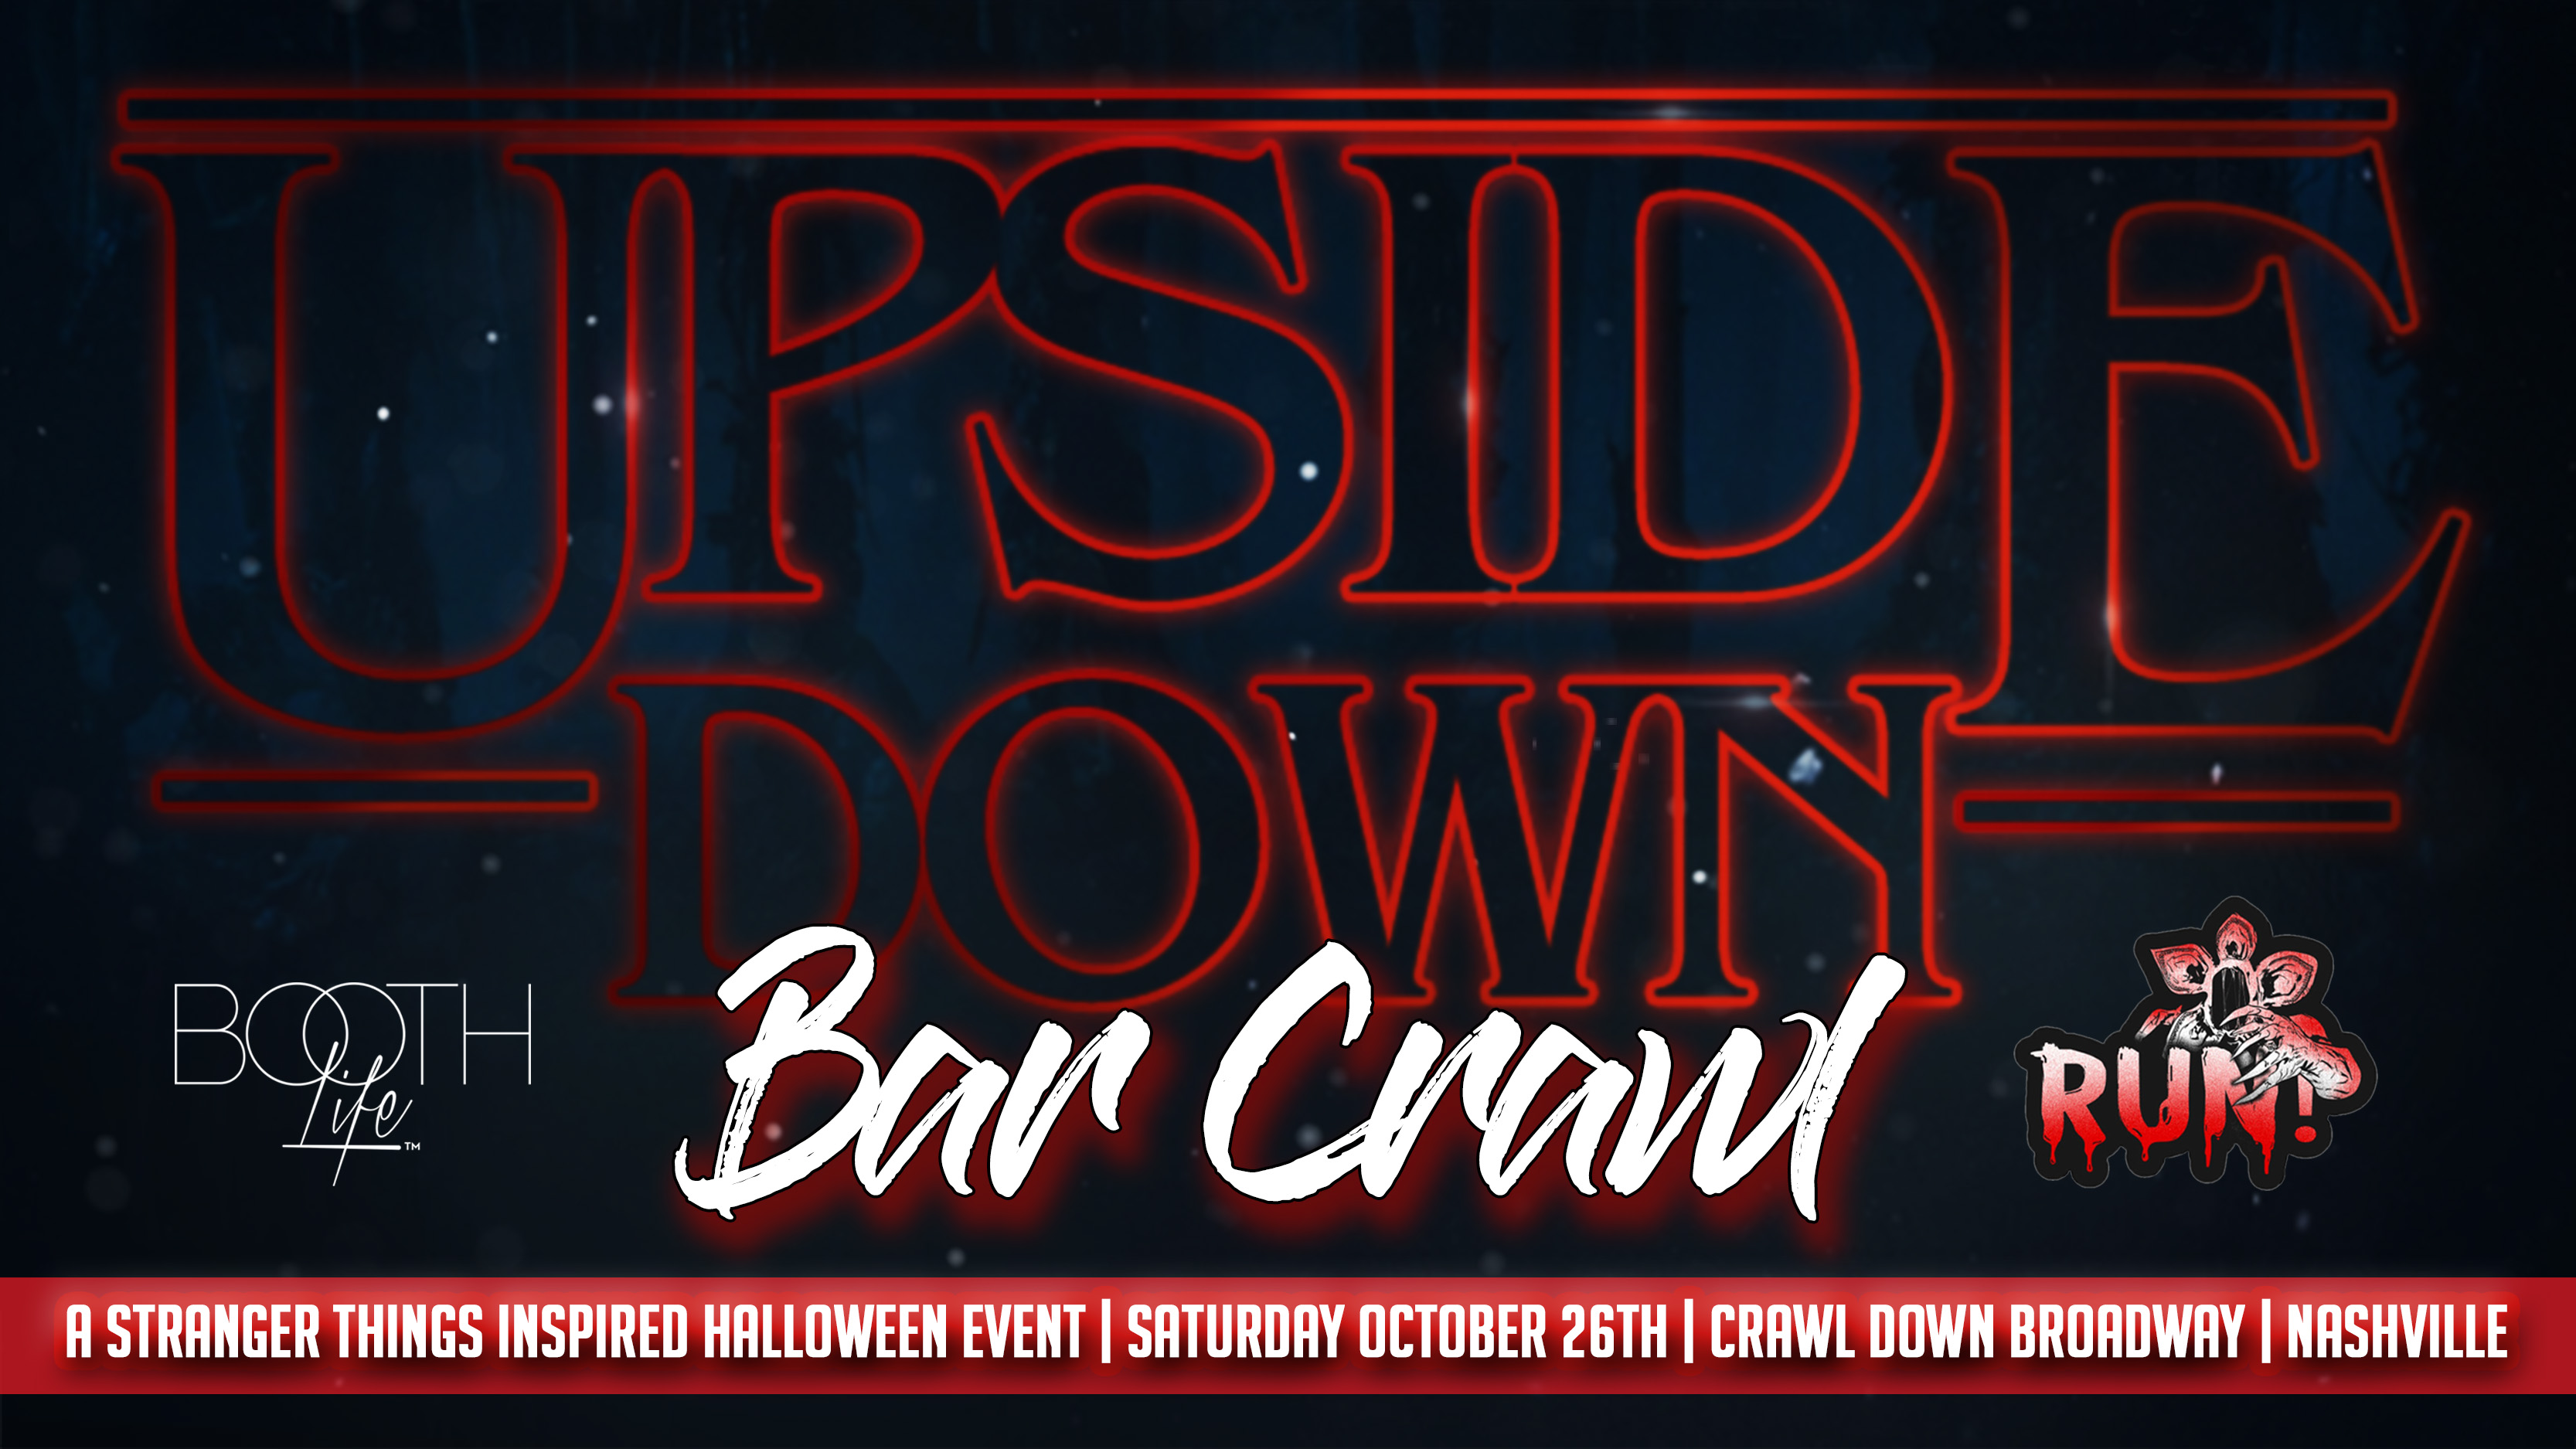 Nashville Halloween Bar Crawl